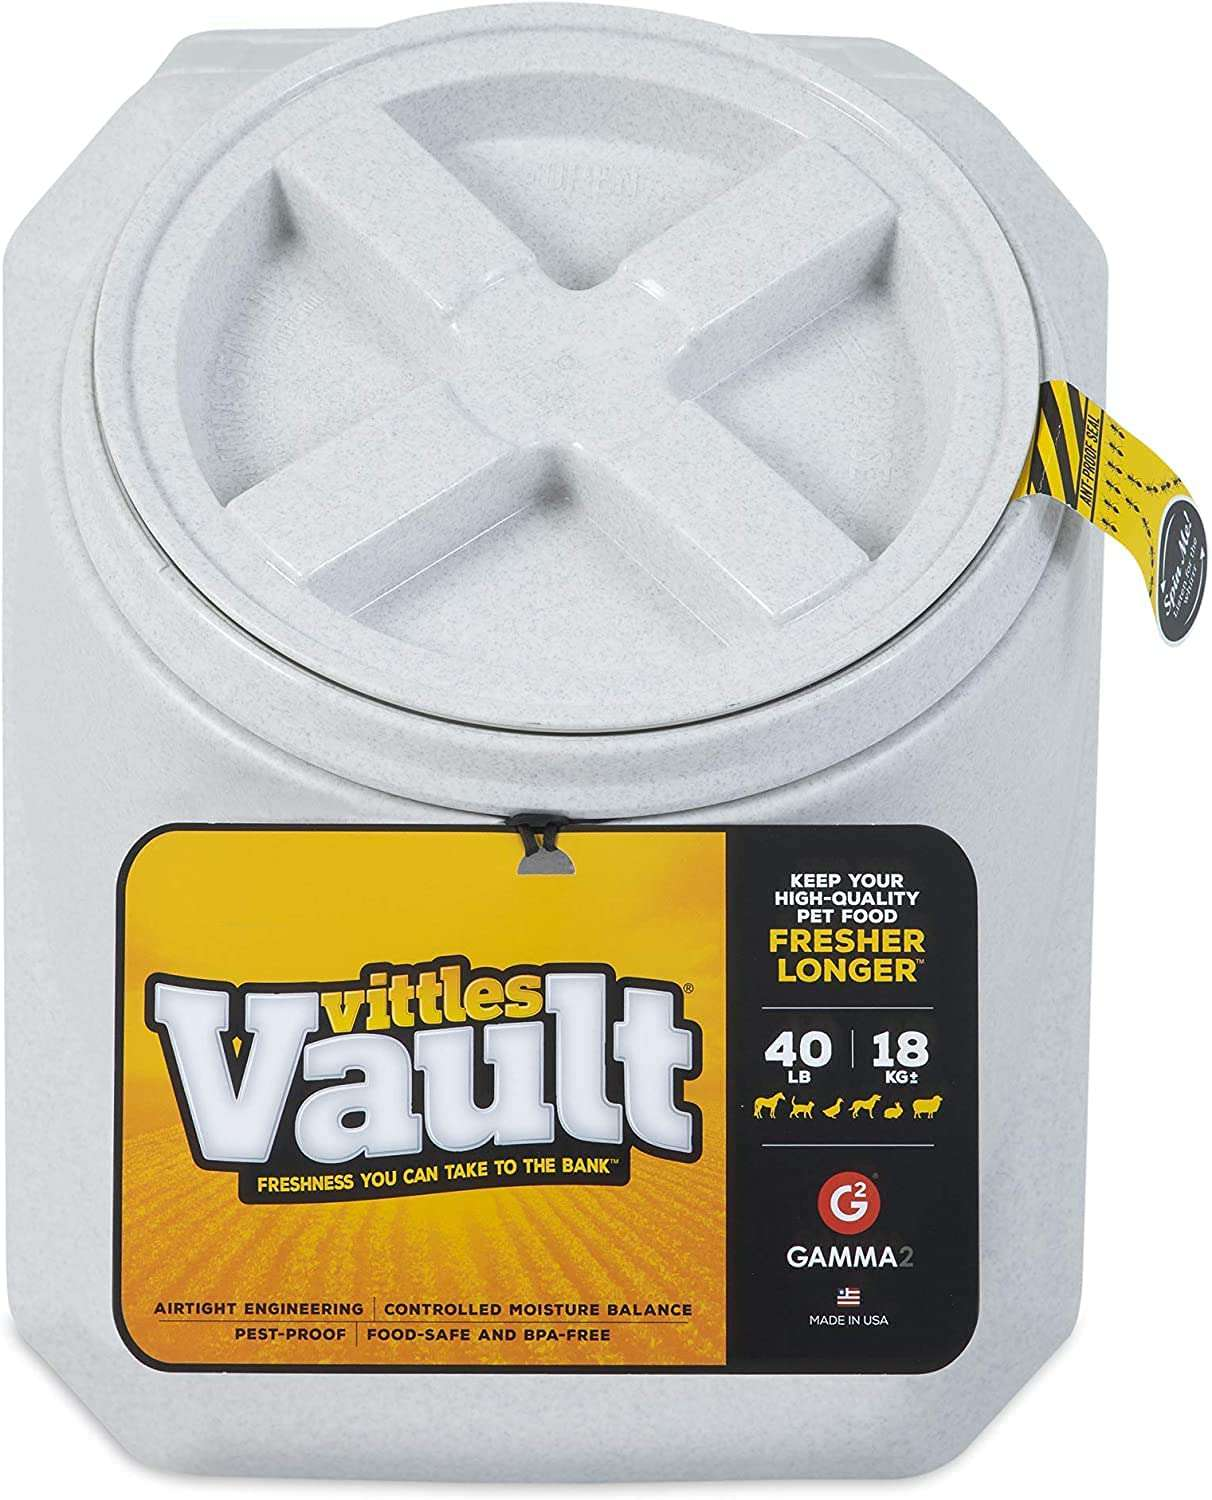 Gamma2 Vittles Vault Outback Stackable Pet Food Storage Container